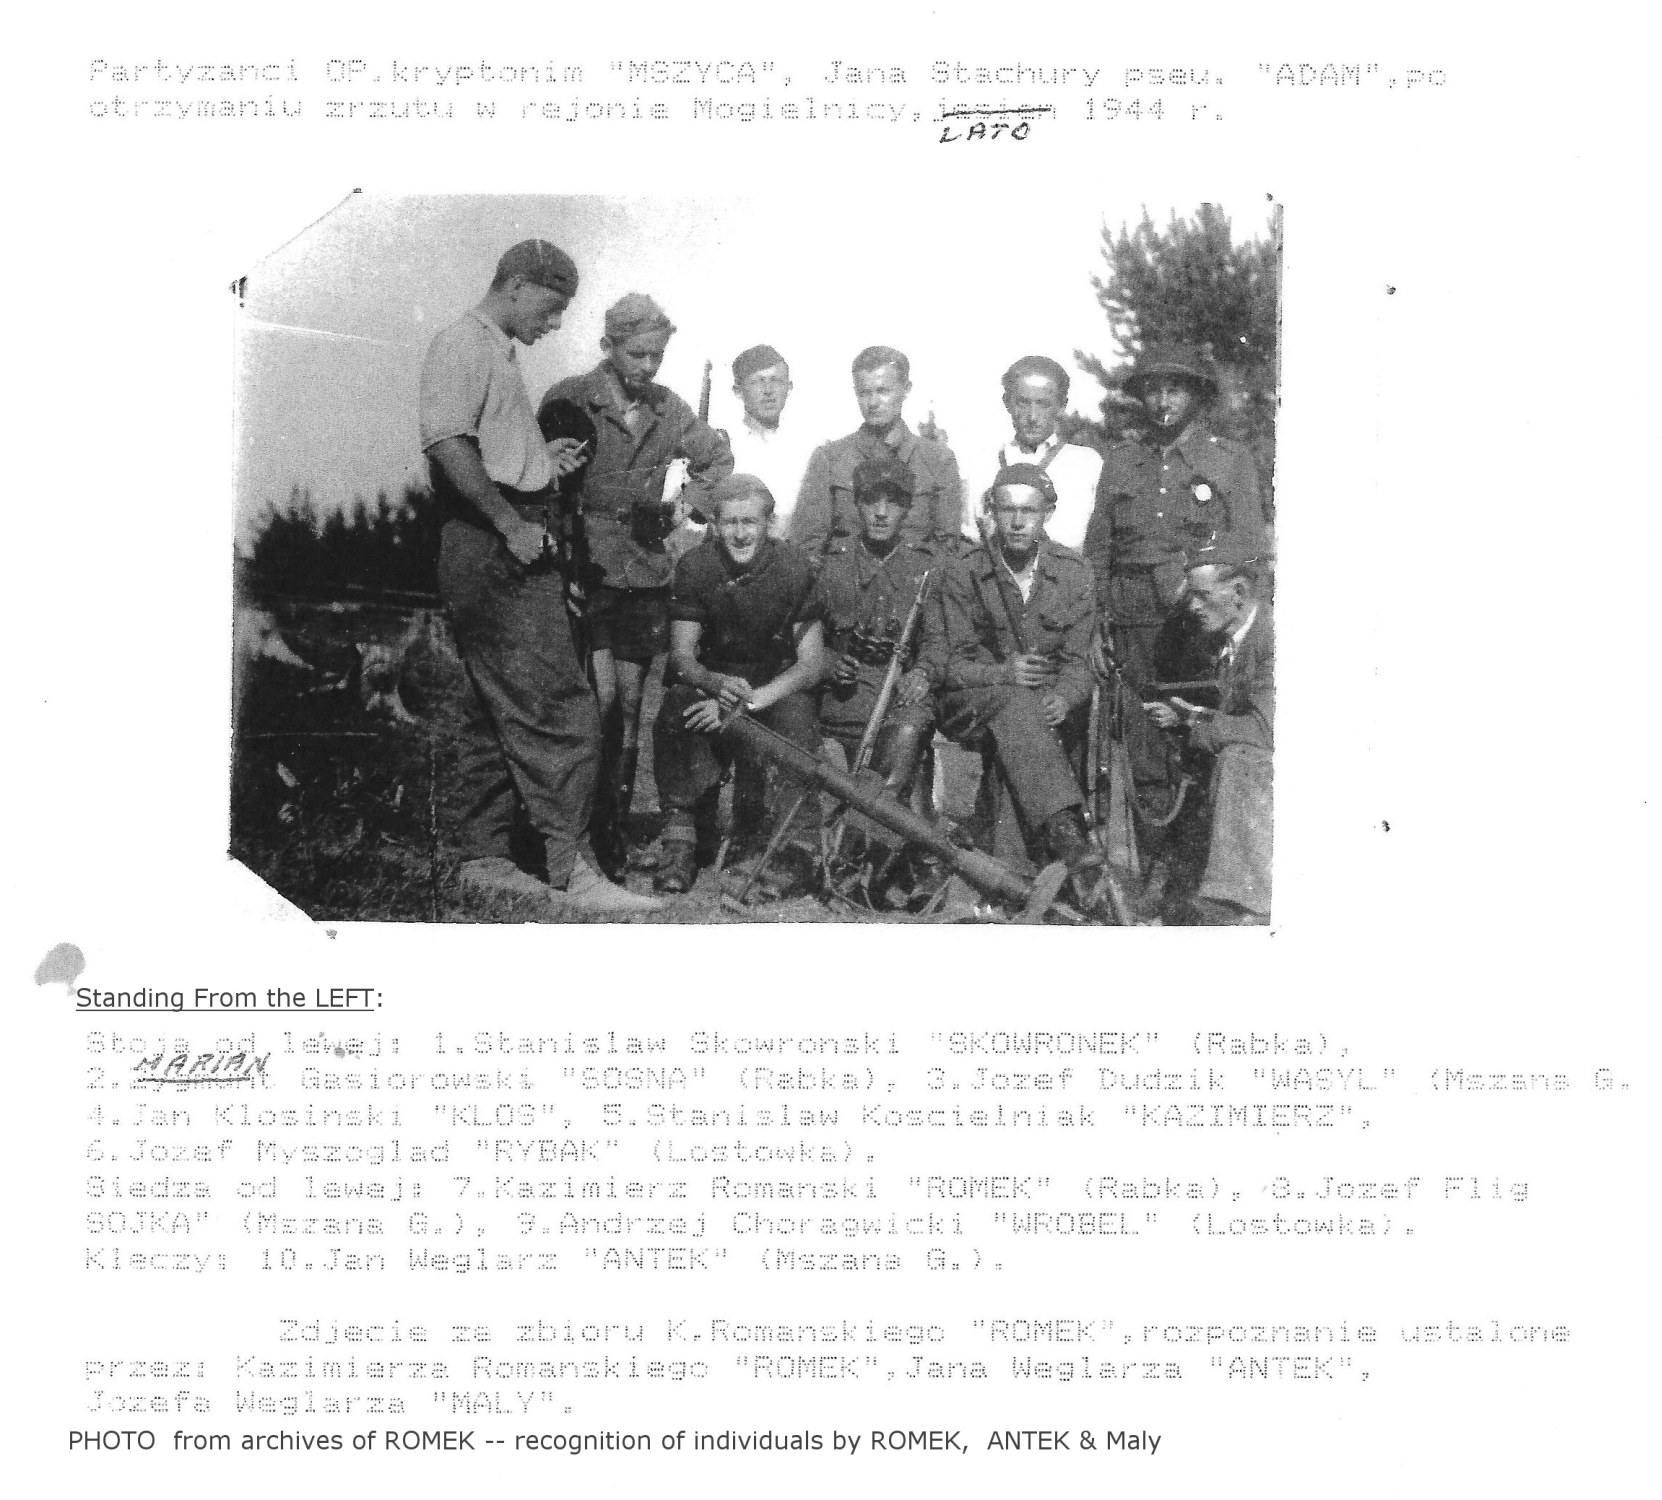 Photo: MSZYCA Unit Partisans after receiving an Airdrop in Mogielnica  Summer 1944